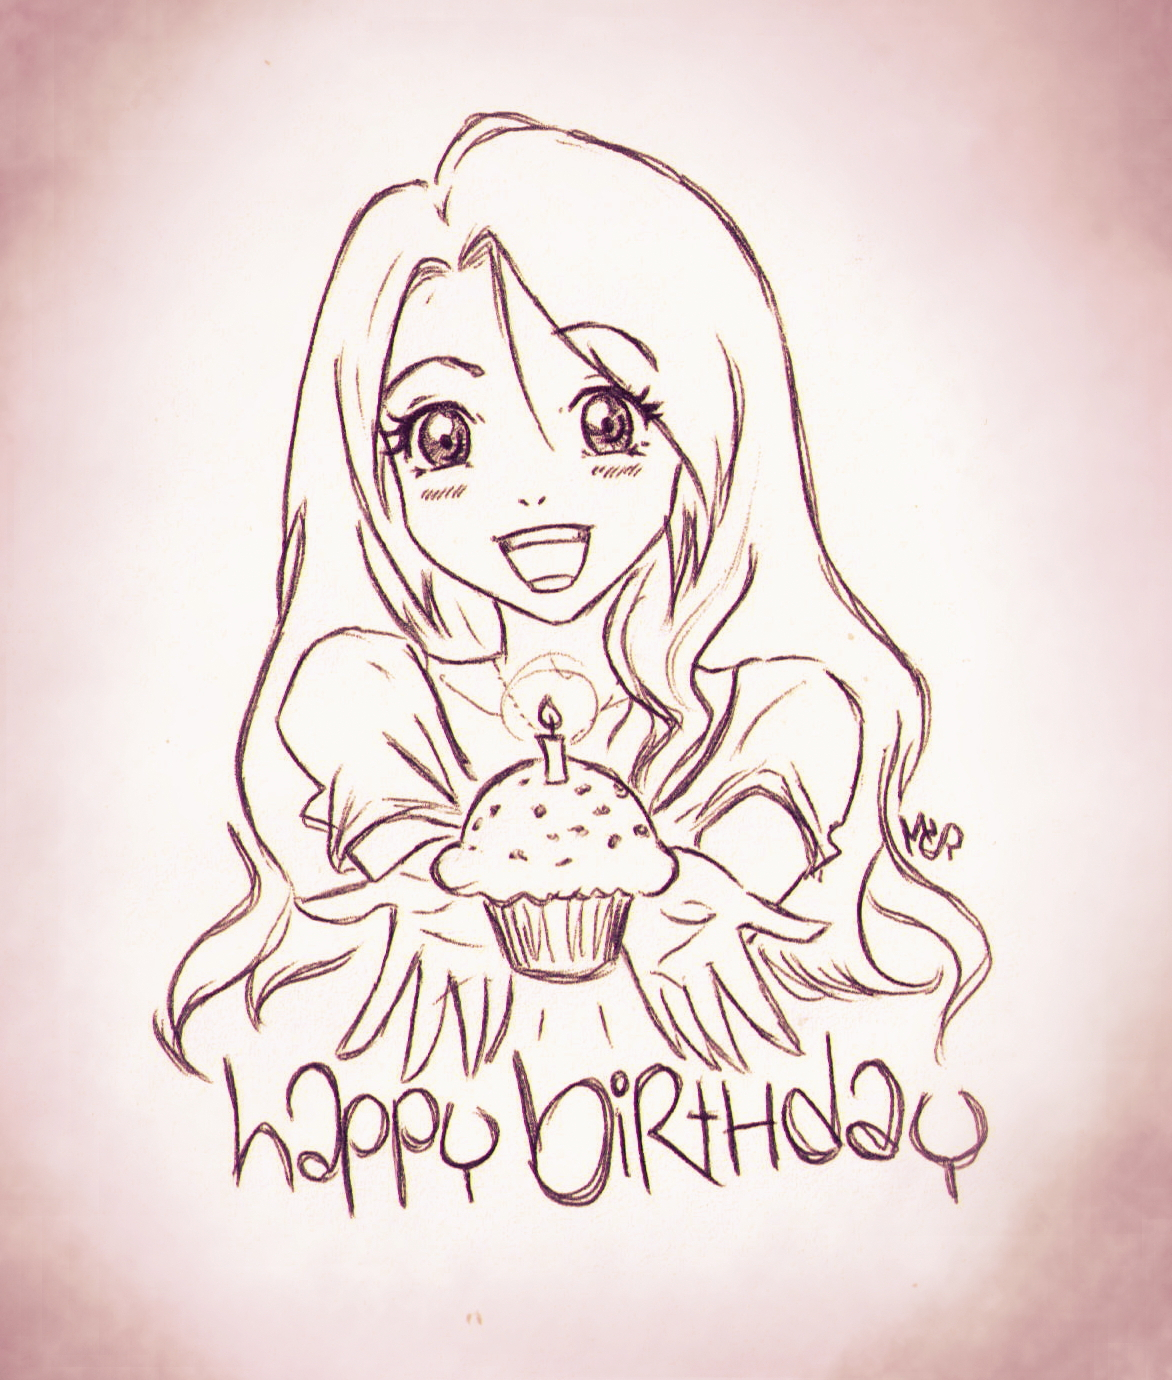 happy birthday pencil drawing ; pencil-sketch-alone-happy-birthday-images-birthday-anime-girl-doodle-by-ladyinsilver-on-deviantart